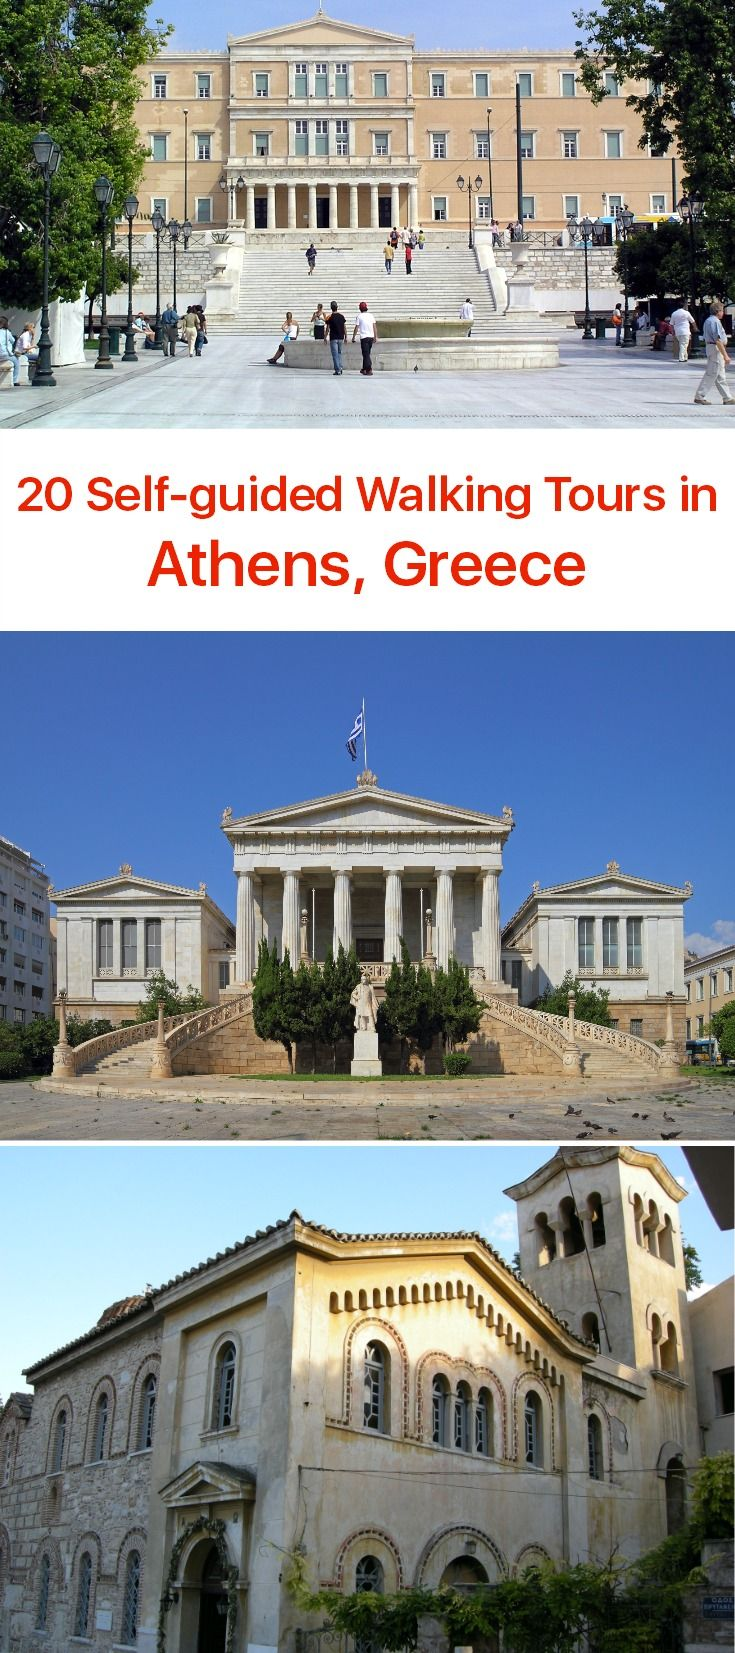 Dominated by ancient Acropolis, the city of Athens has been the front image of Greece for several millennia. Immortalized through association with one of its eternal citizens - Socrates, Athens lives on today as a magnet for millions of visitors coming over each year to appreciate the city's everlasting beauty.